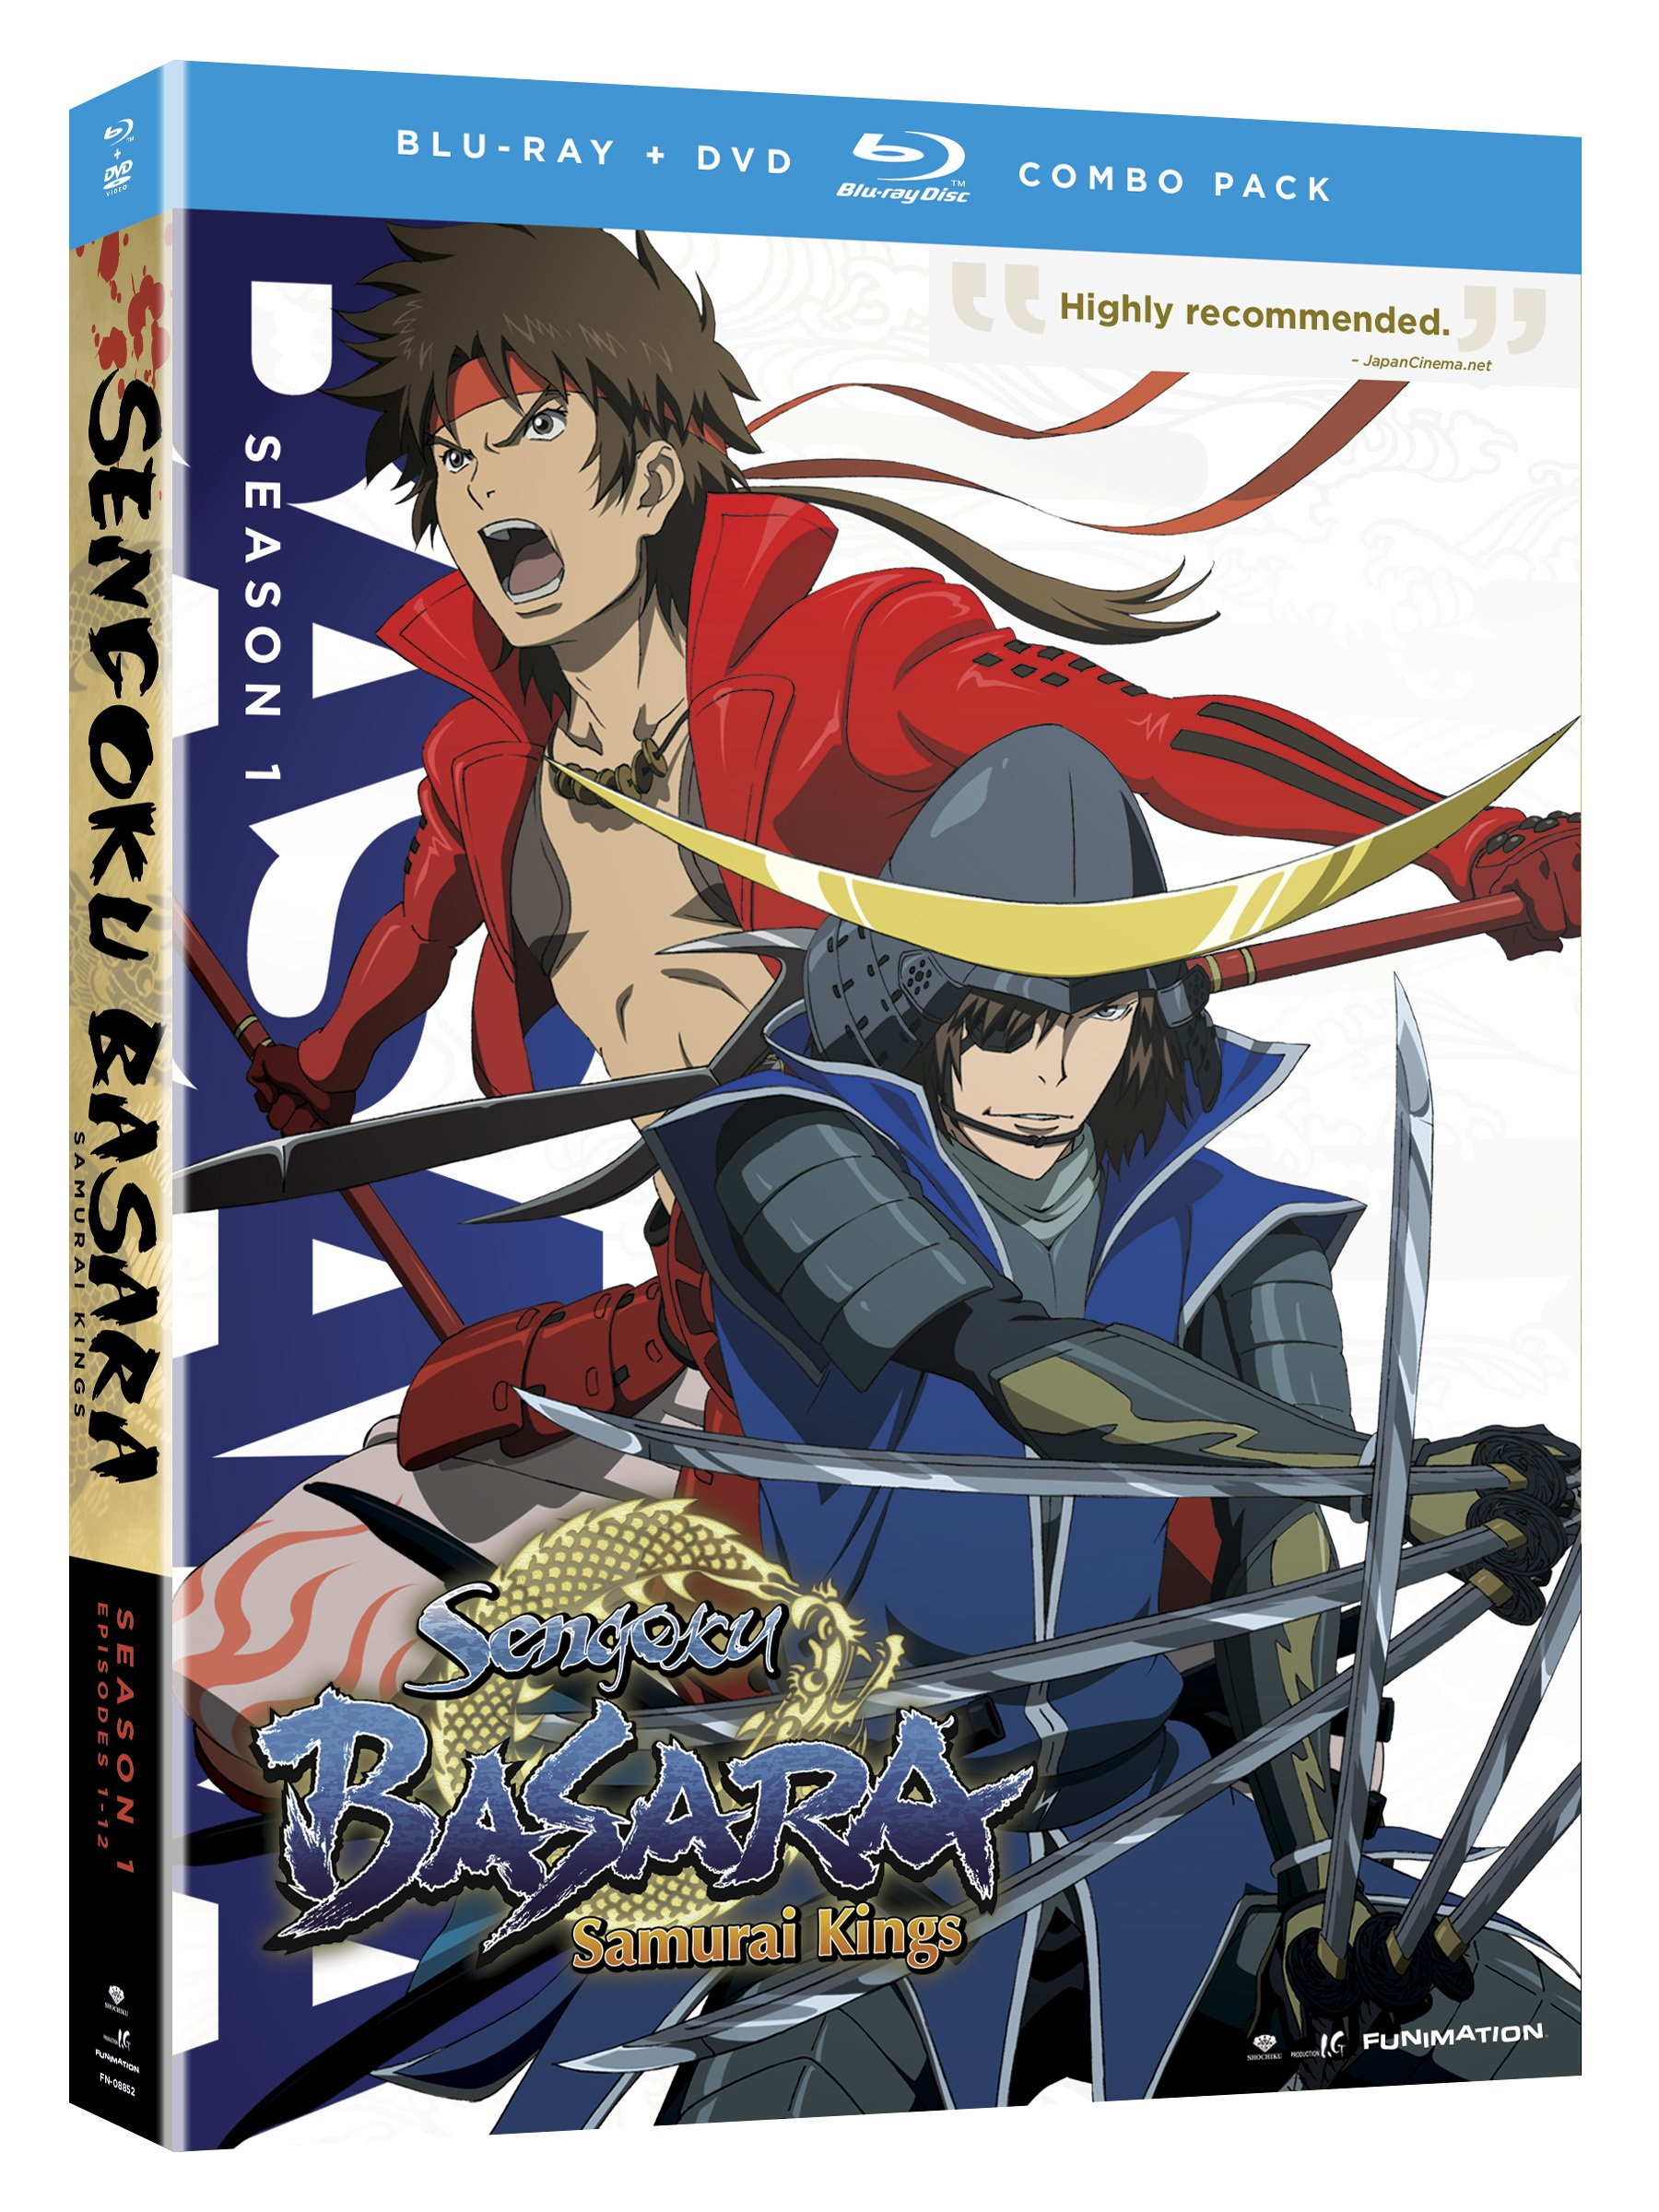 Blu-ray : Sengoku Basara: Samurai Kings - Complete Series (With DVD, Boxed Set, 4PC)